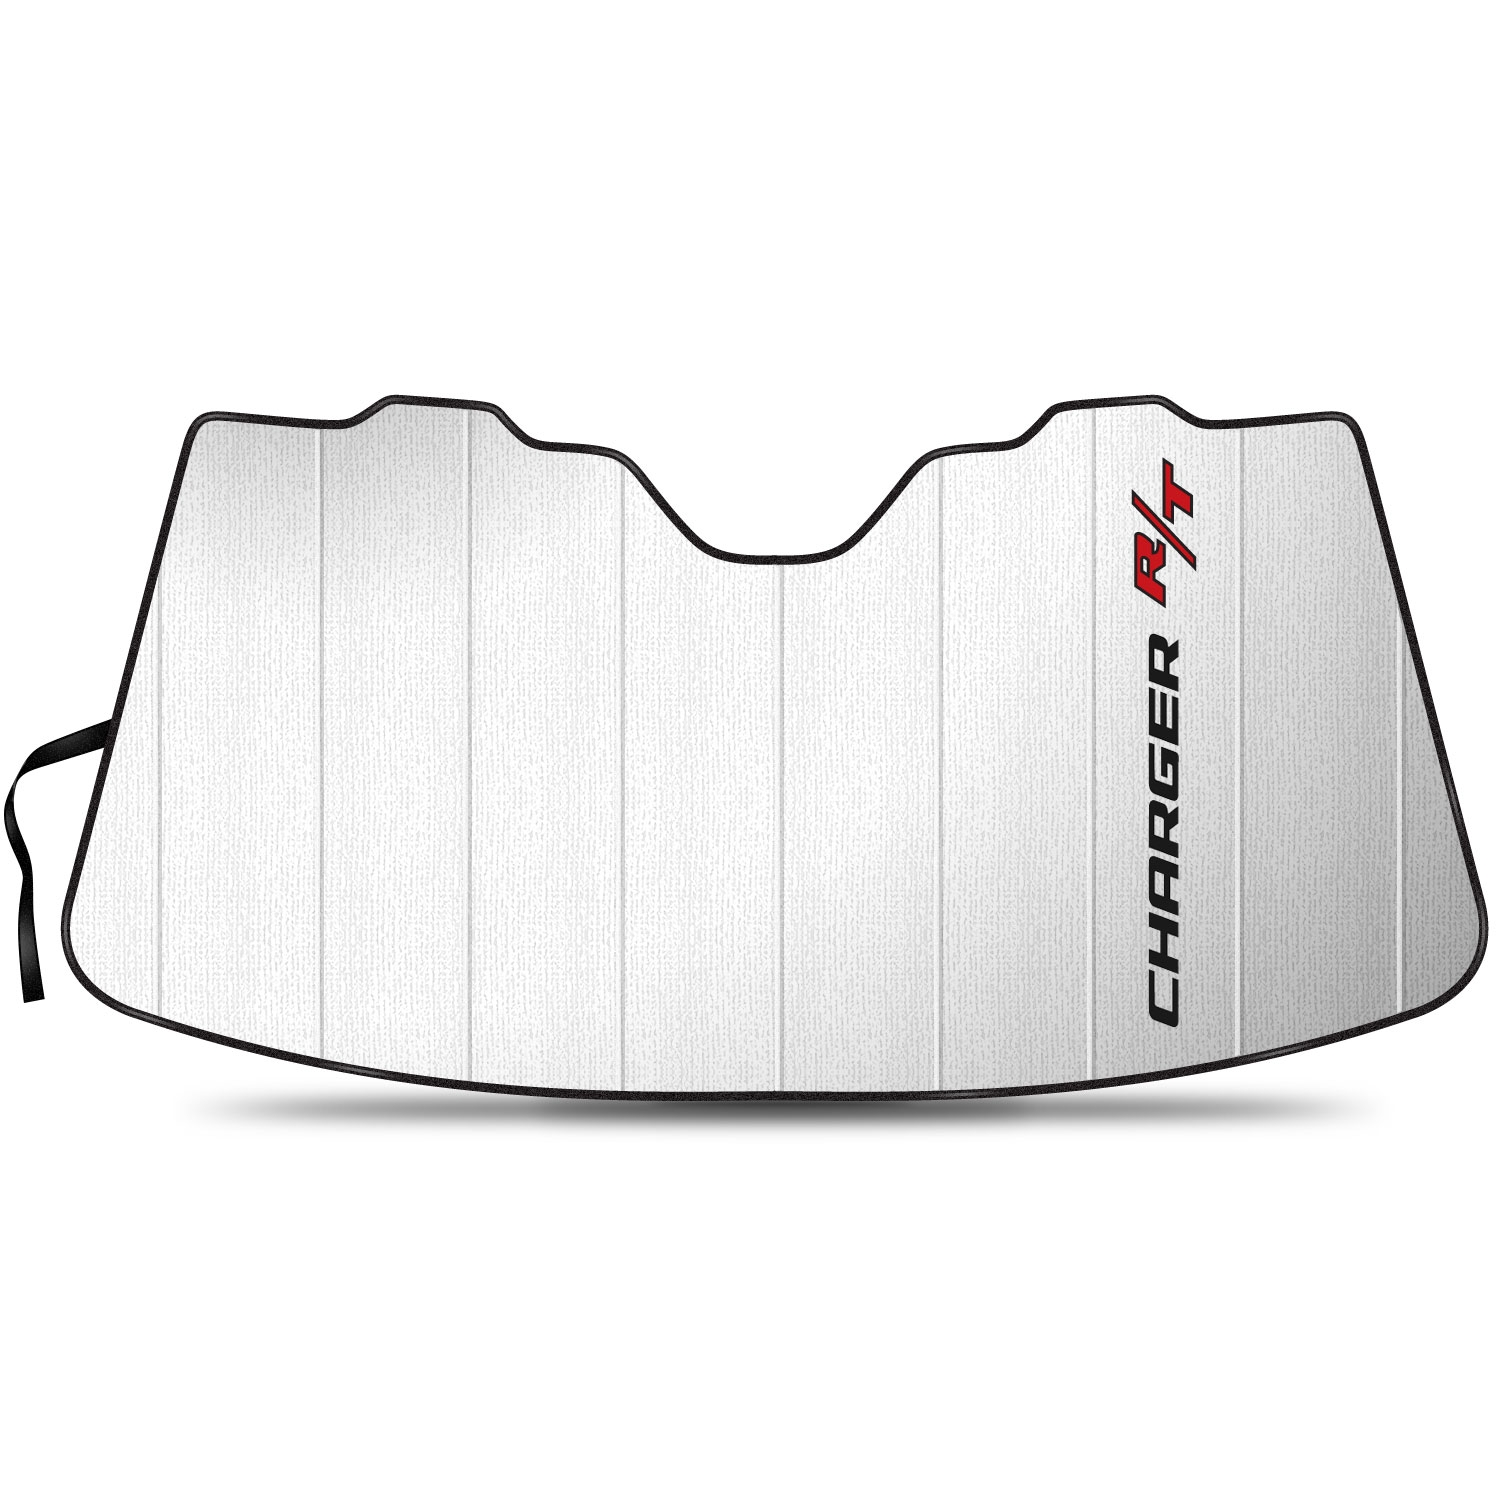 "Dodge Charger R/T Logo 55-1/2""x 27"" Stand Up Universal Fit Auto Windshield Sun Shade"